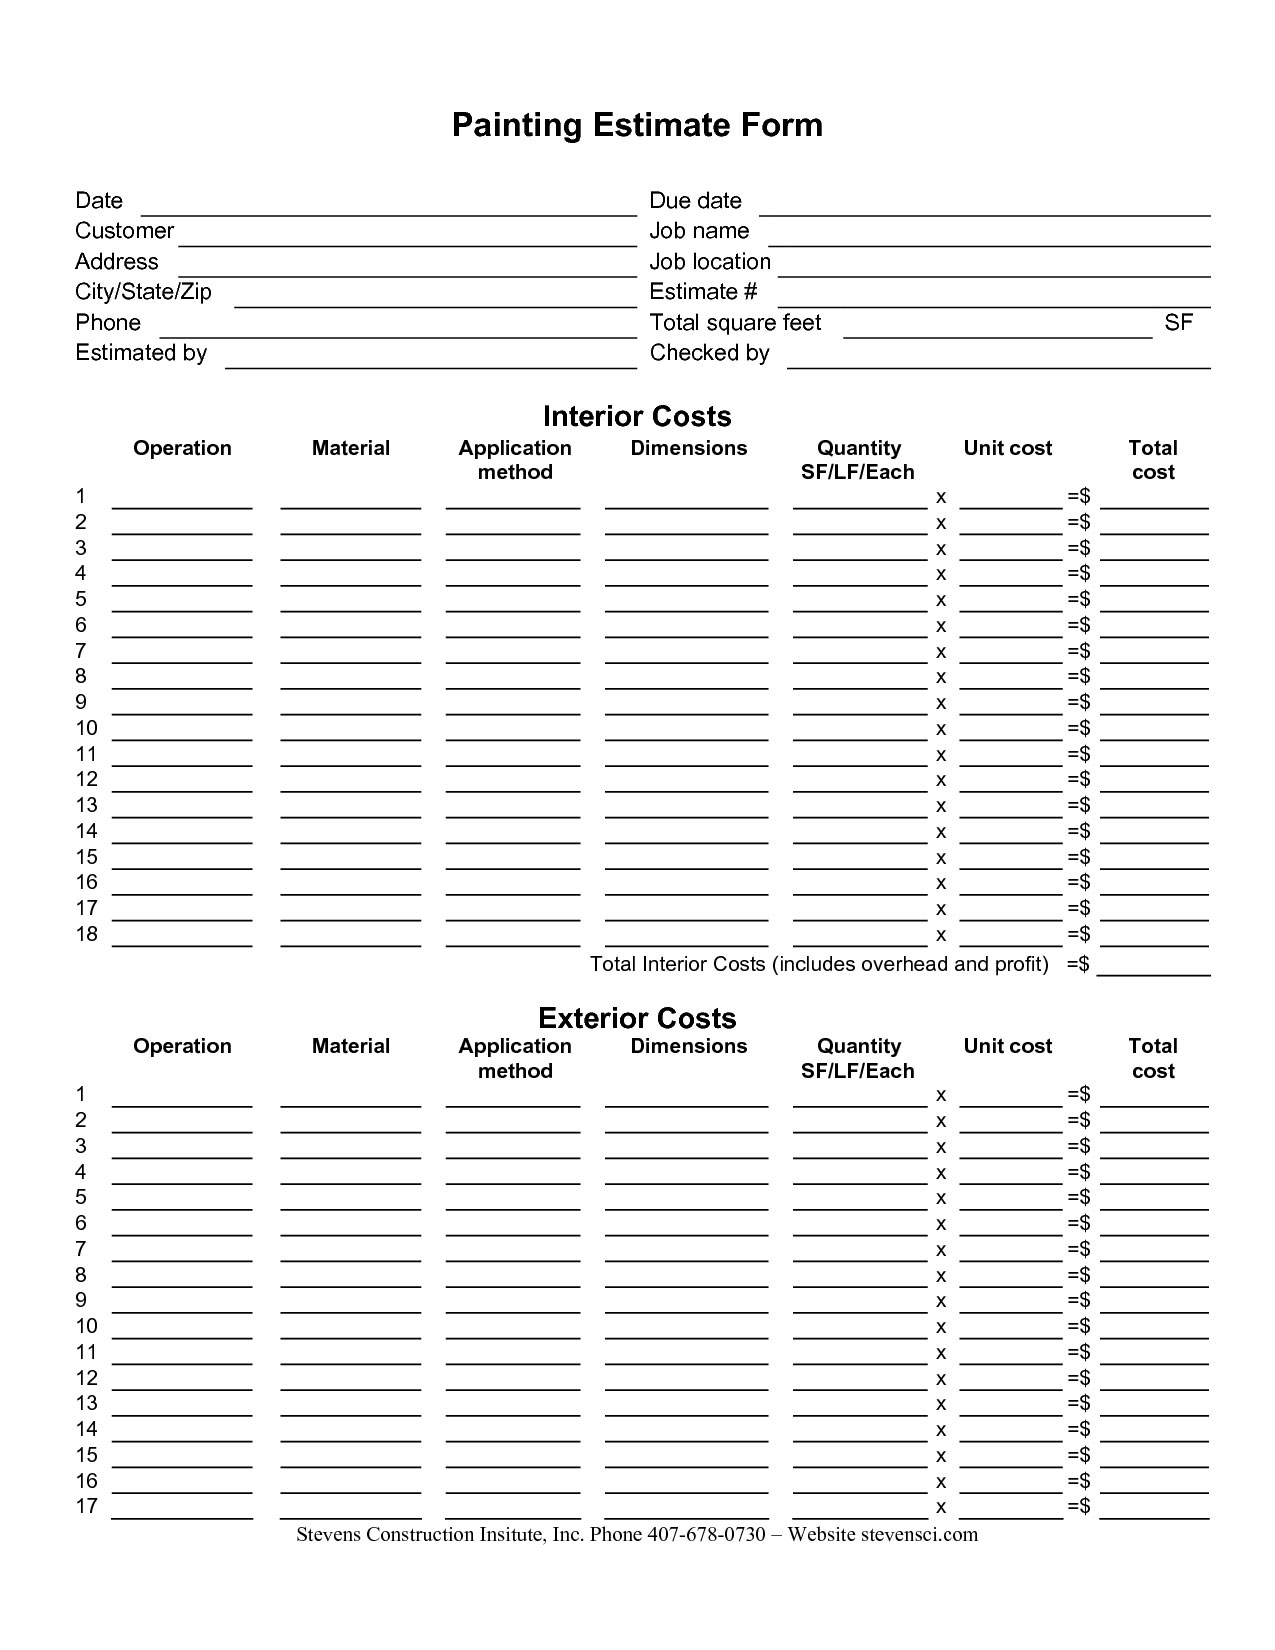 Painting Estimate Form Sample | Painting Estimate Sheet pertaining to Paint Proposal Template